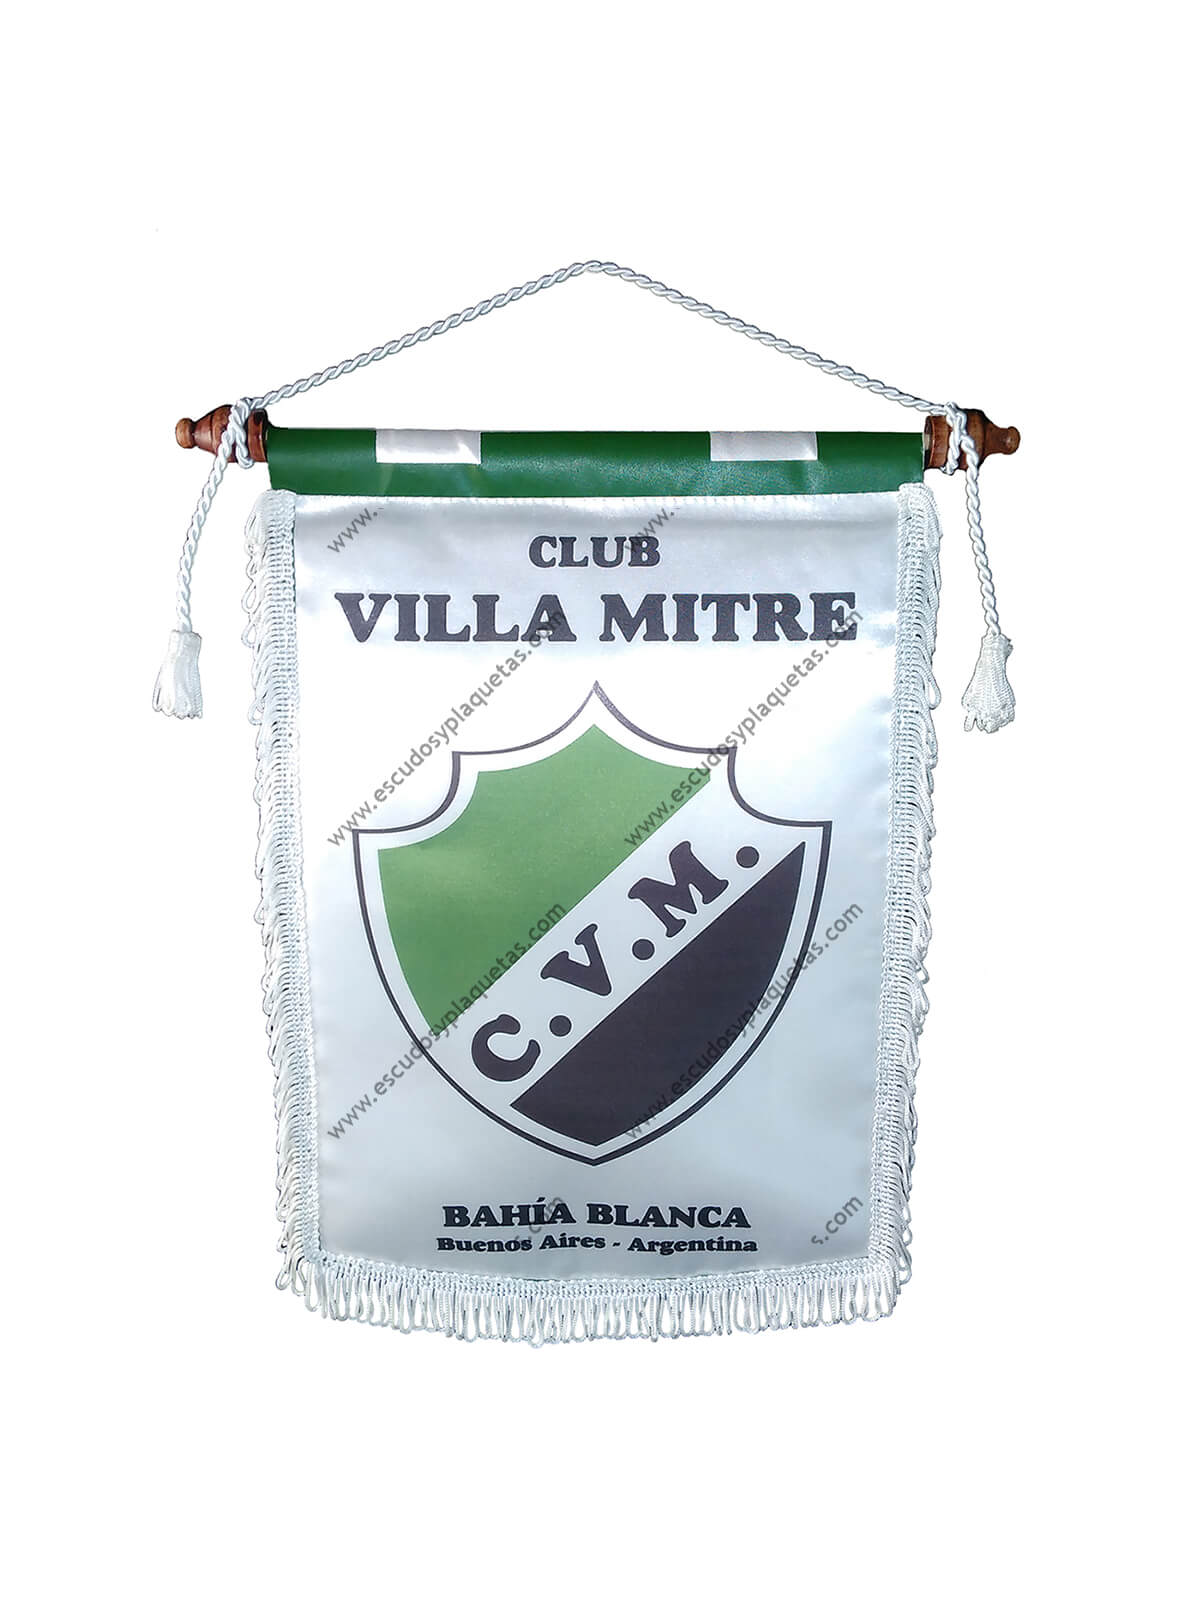 Estandarte Club Villa Mitre